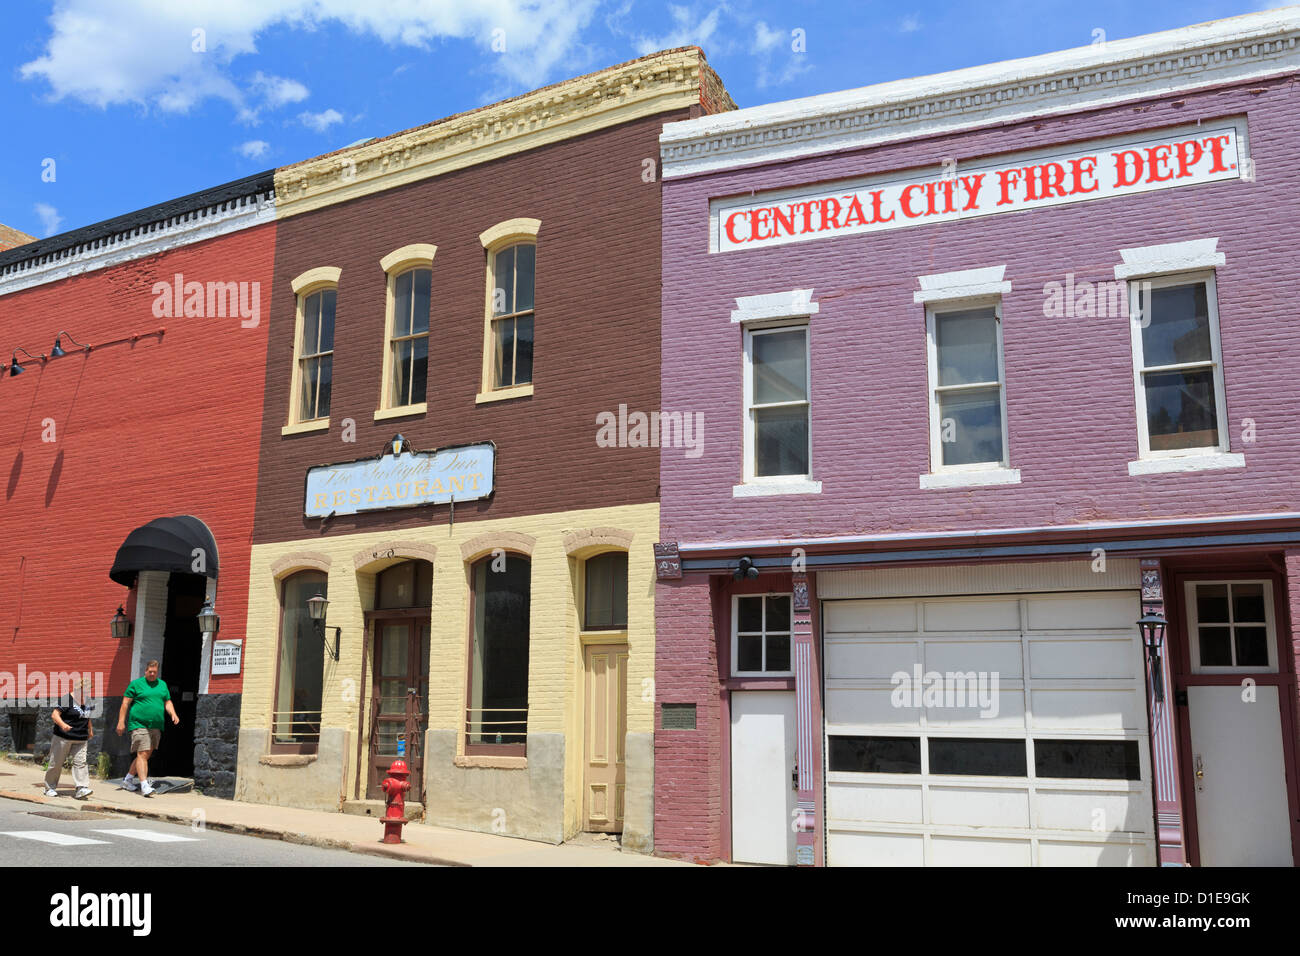 Central City Fire Department, Central City, Colorado, United States of America, North America - Stock Image